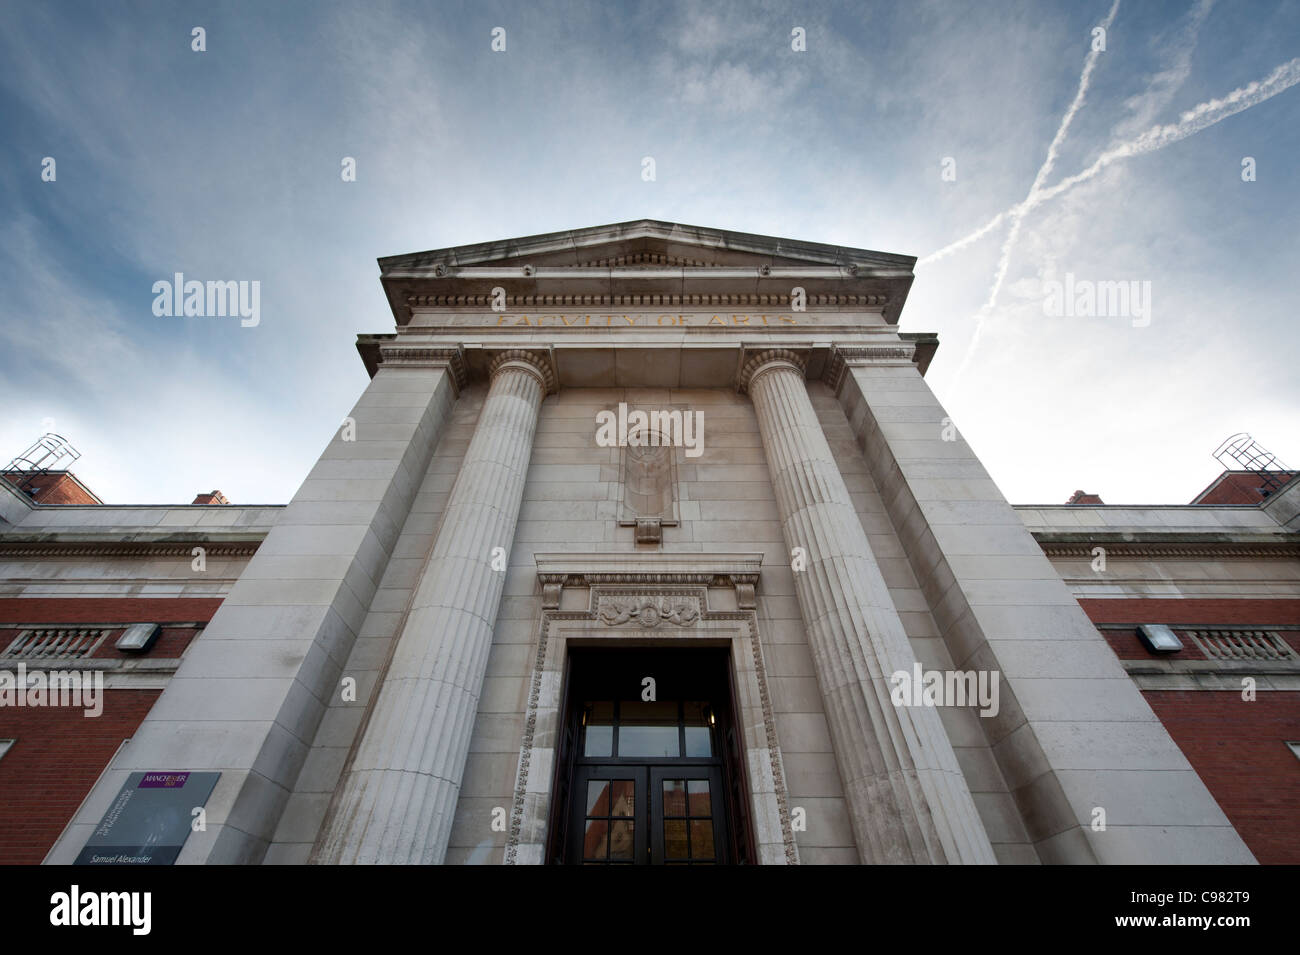 The Samuel Alexander Building on Burlington Street on Oxford Road campus of The University of Manchester (Editorial - Stock Image